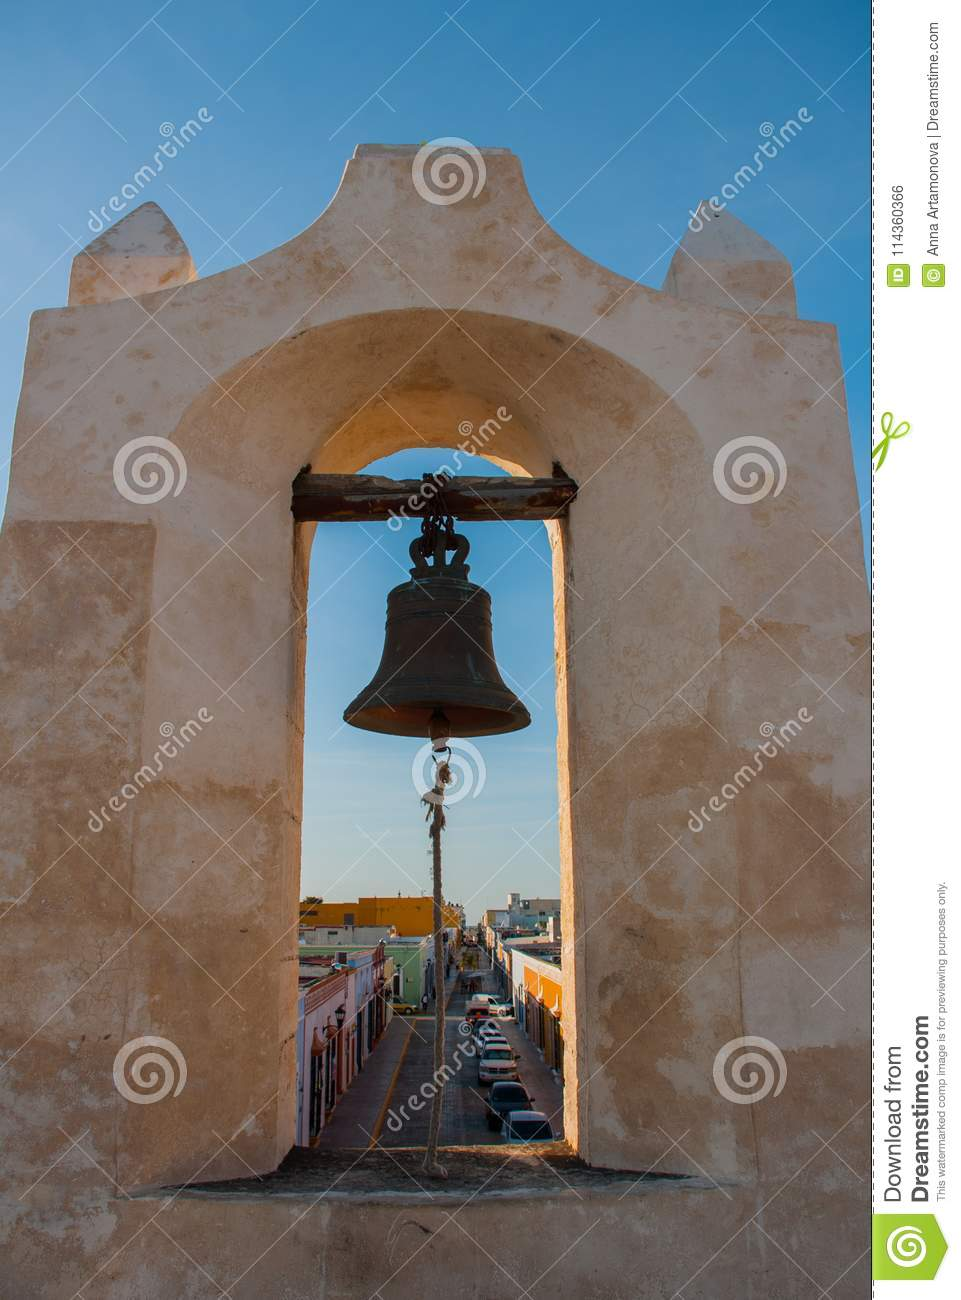 The bell on the guard tower in San Francisco de Campeche, Mexico. View from the fortress walls